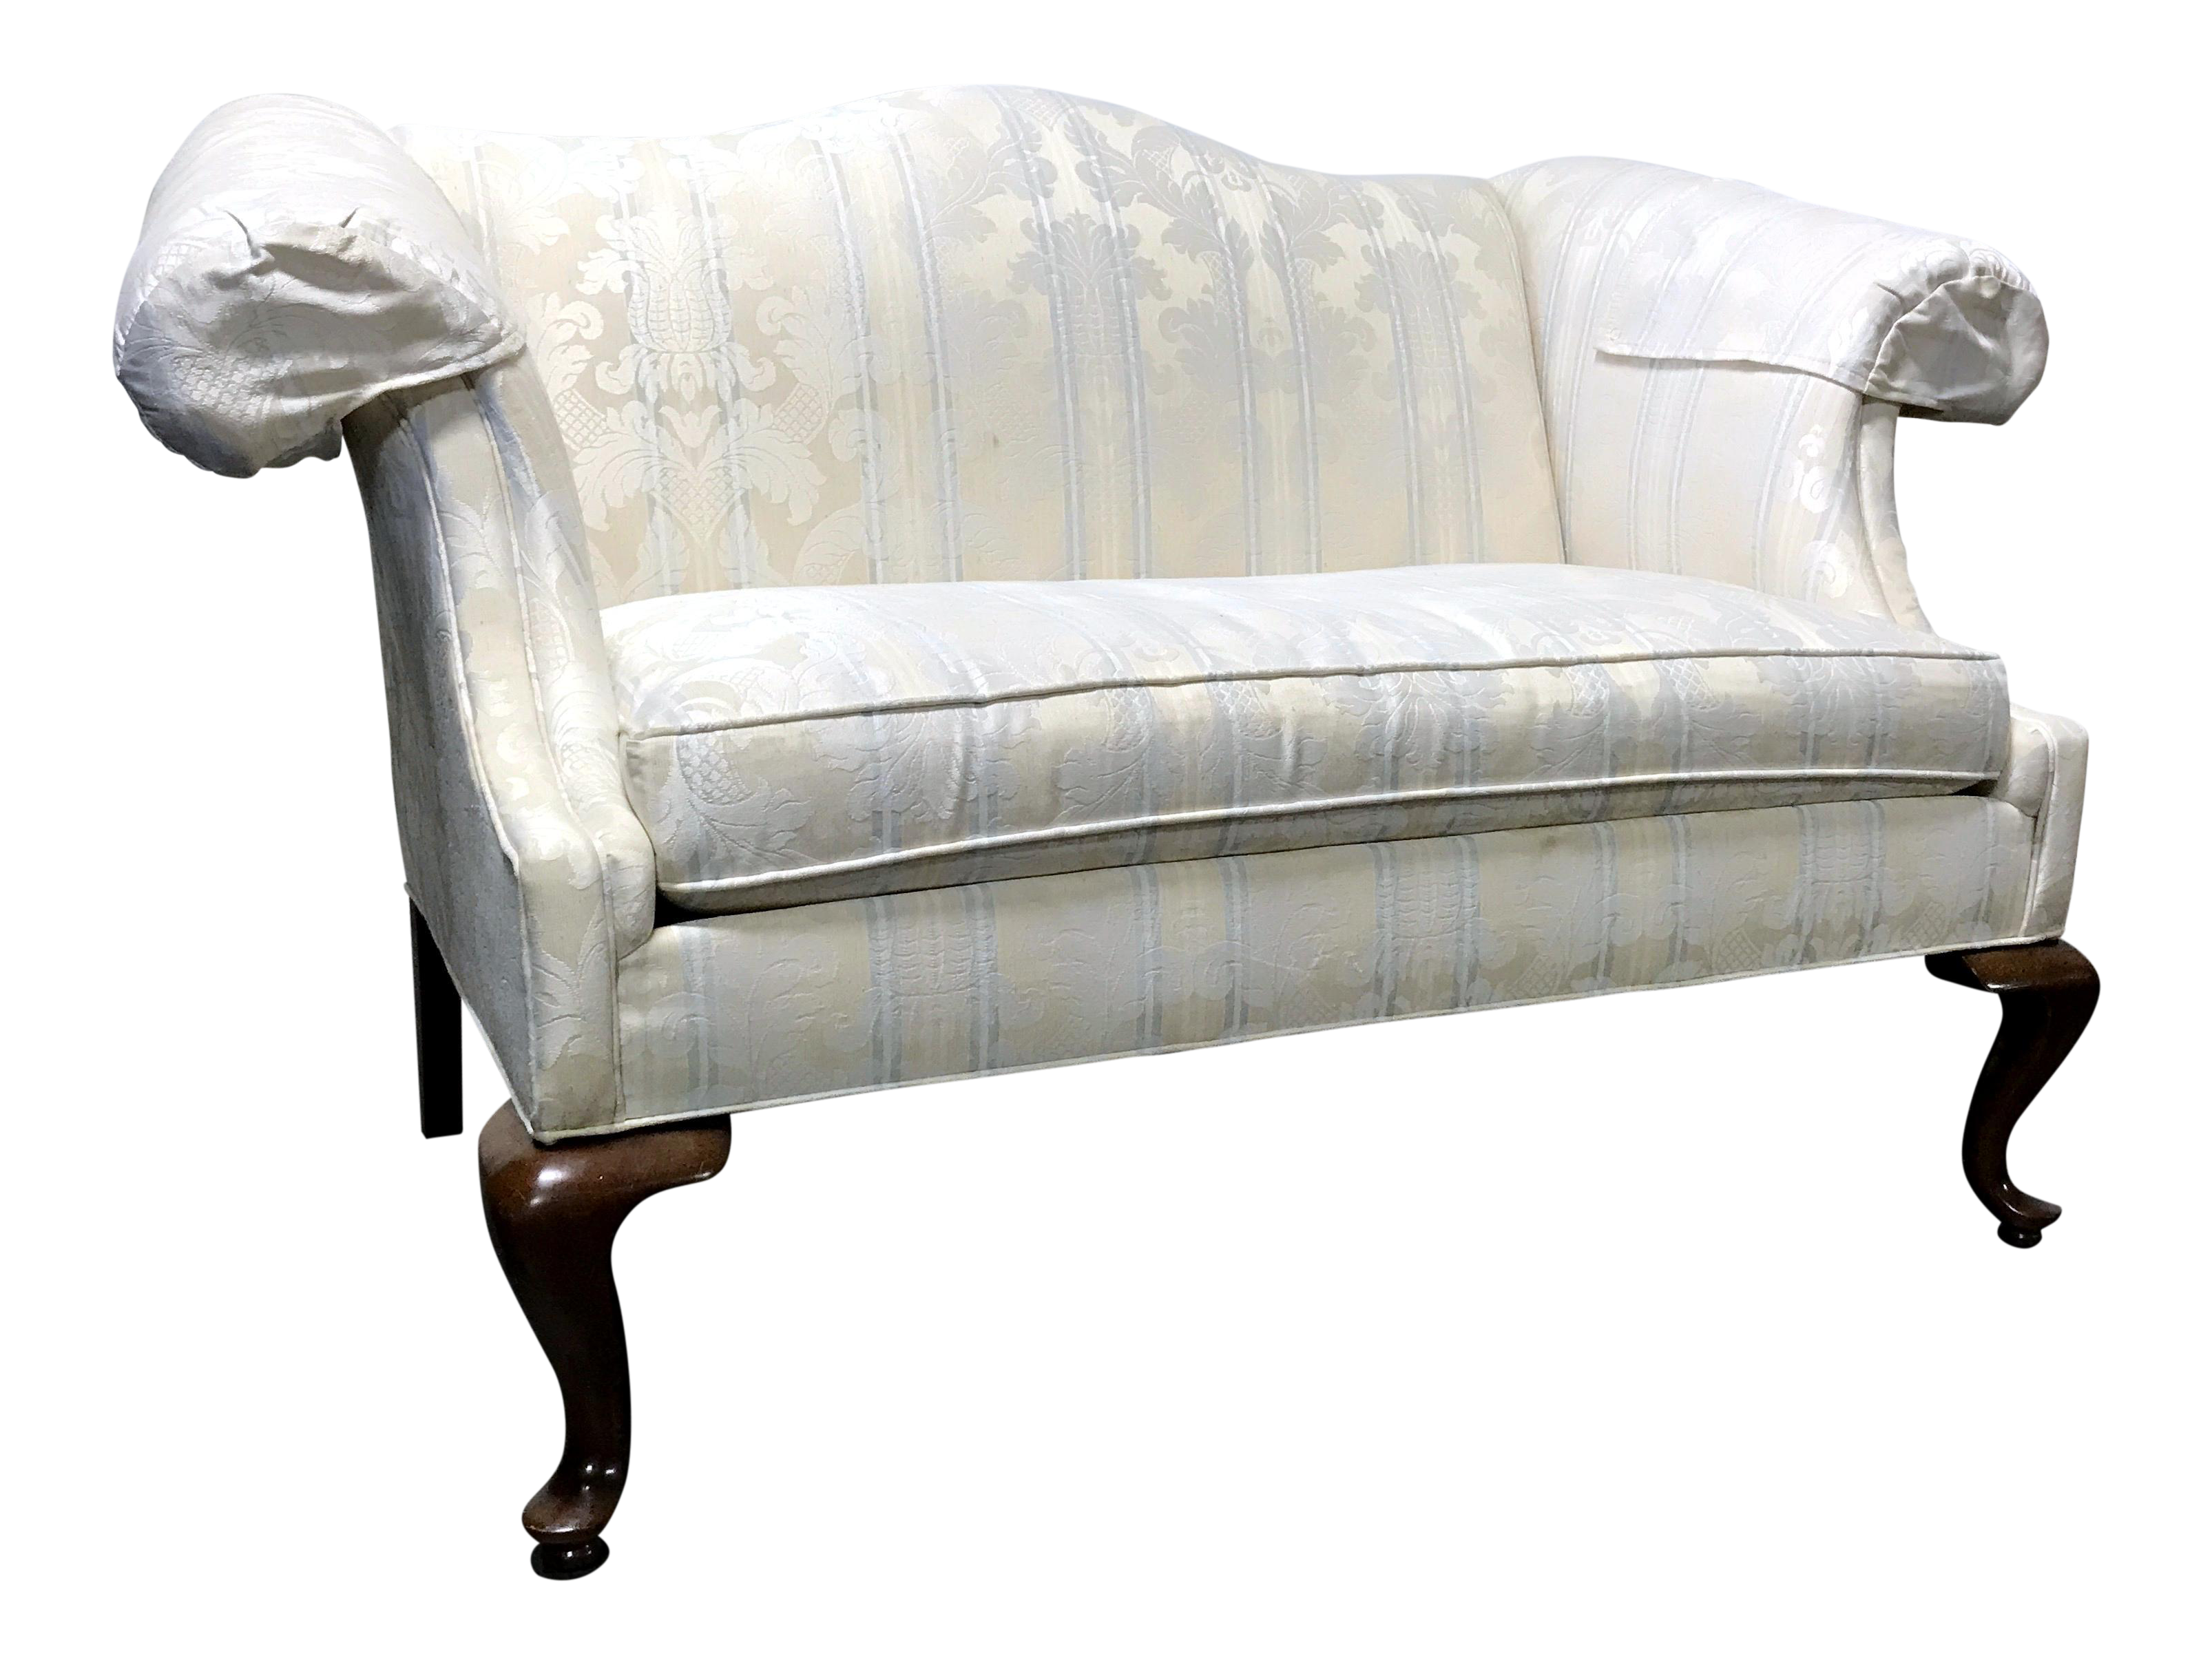 Drexel Traditional Classics Queen Anne Camel Back Loveseat Settee Chairish